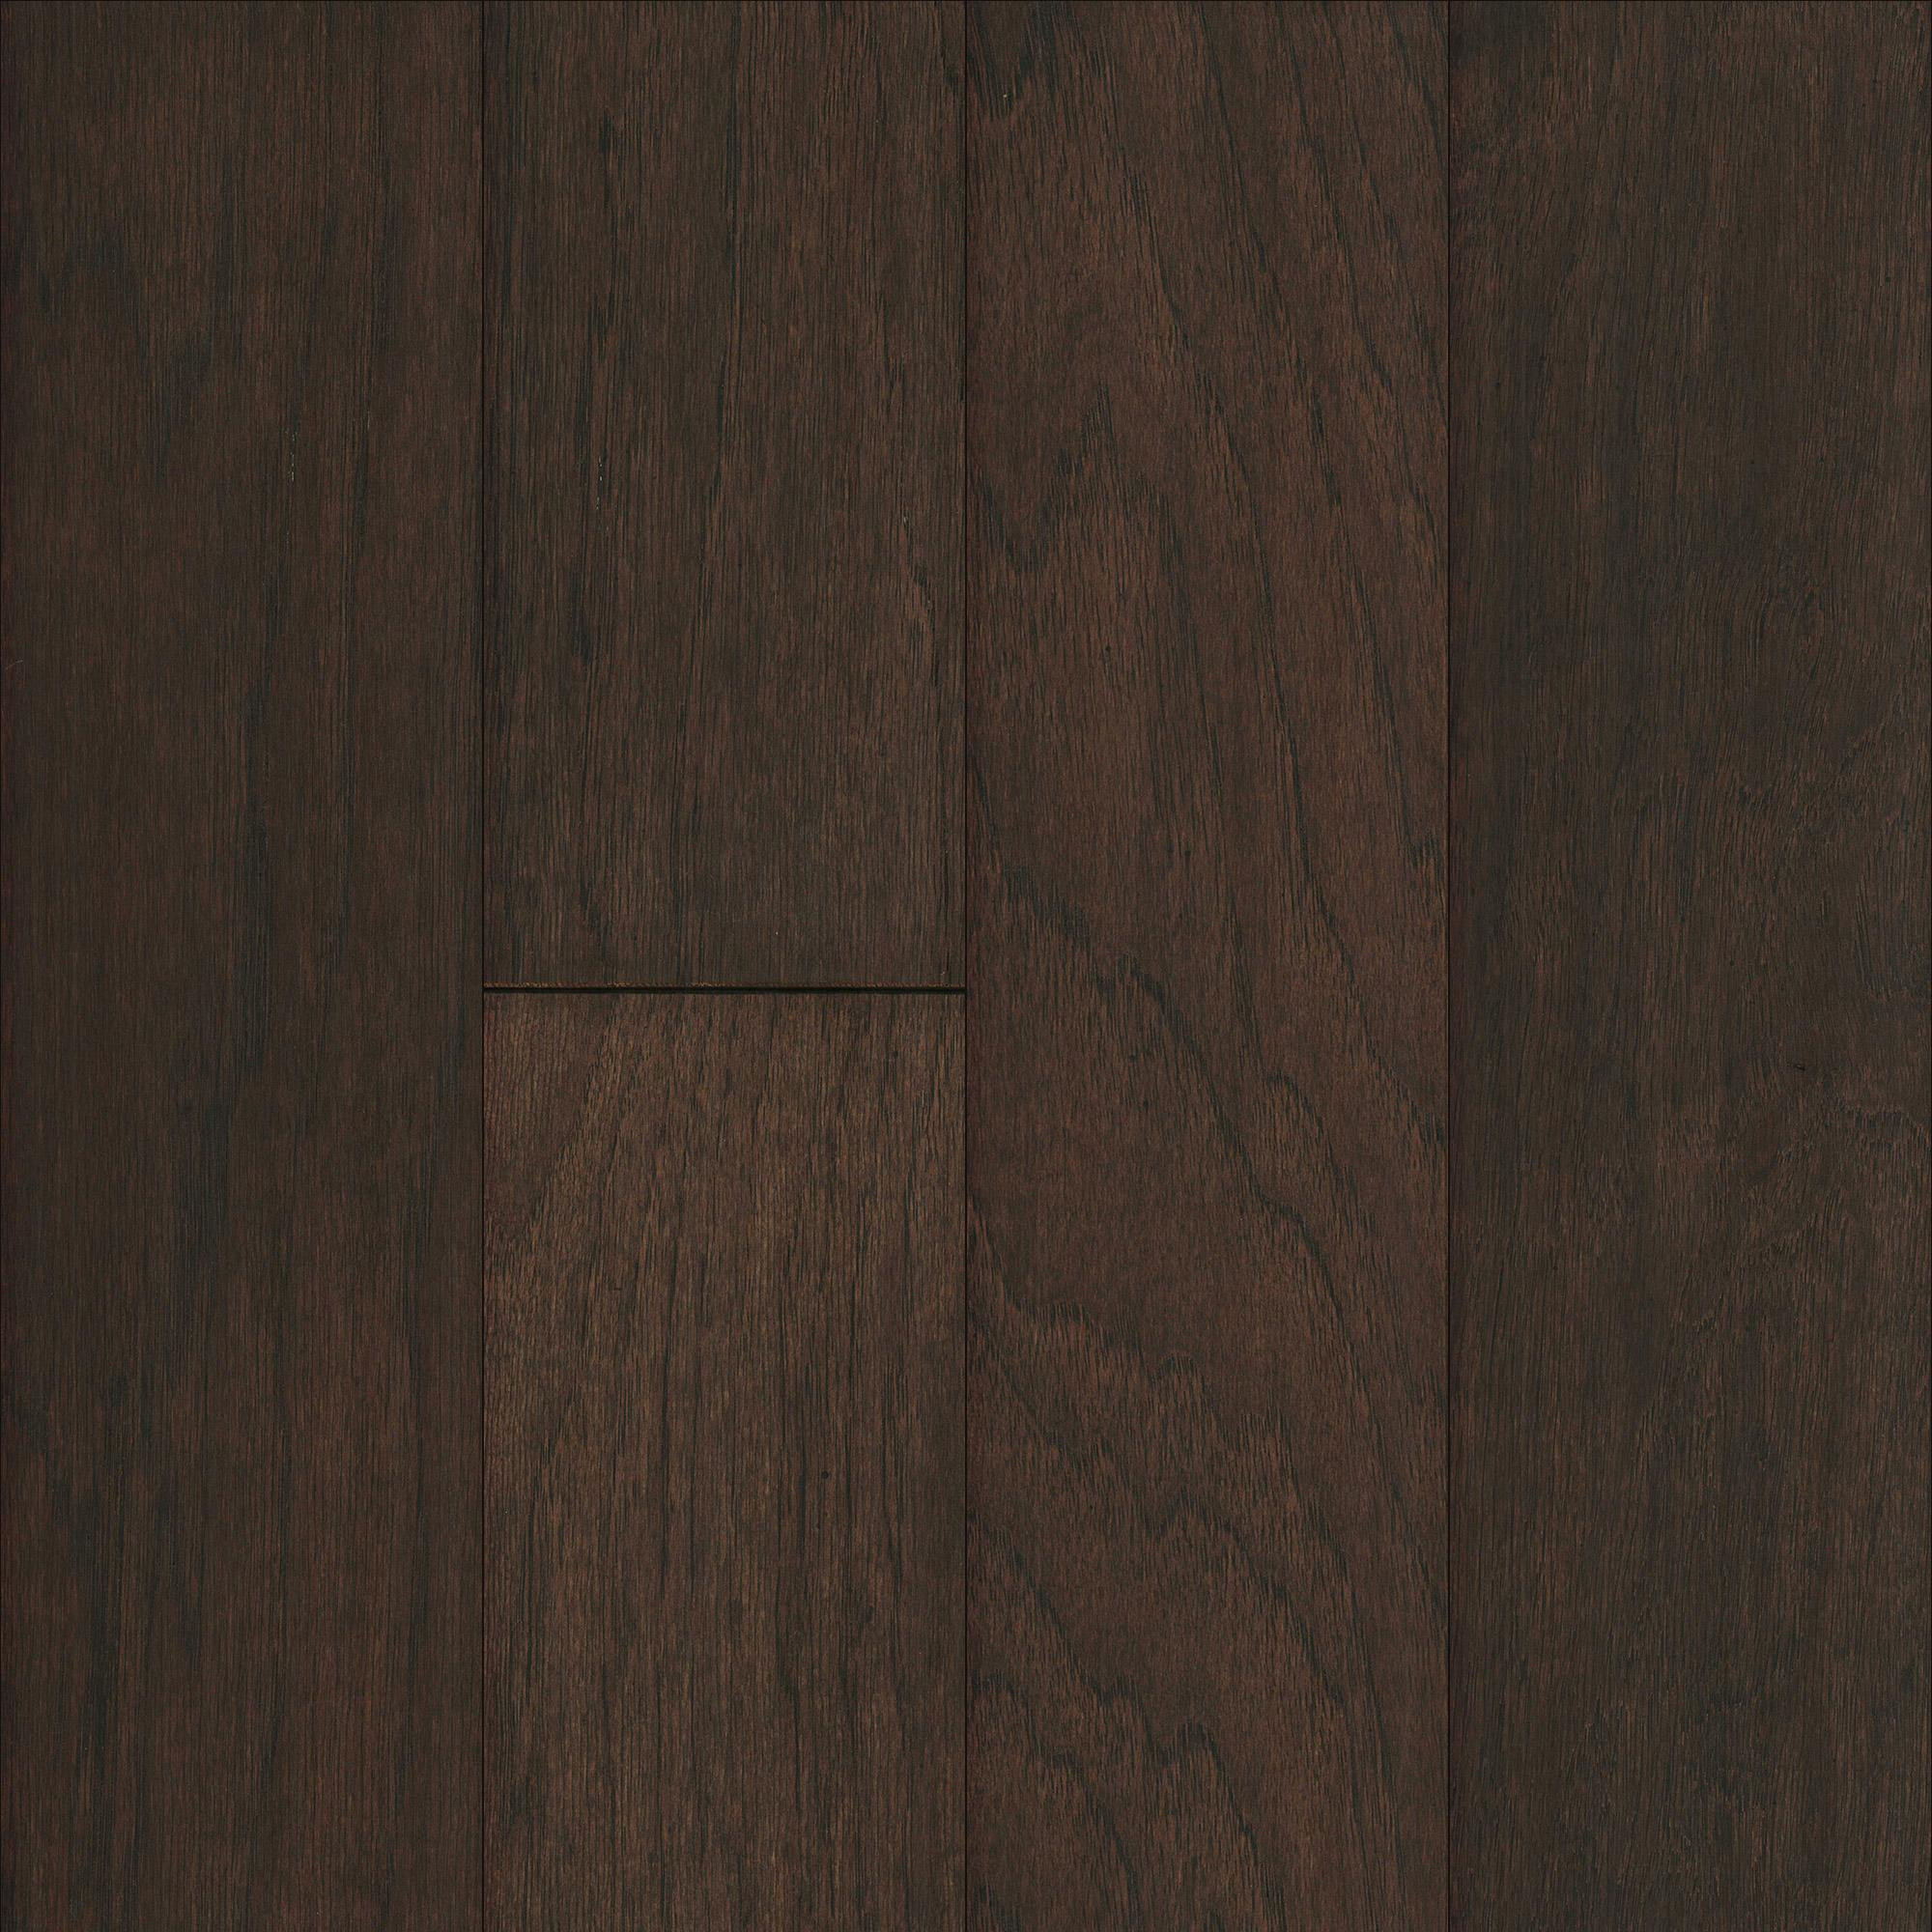 hickory hardwood flooring colors of mullican devonshire hickory espresso 5 engineered hardwood flooring in hickory espresso 5 x 40 2000 a